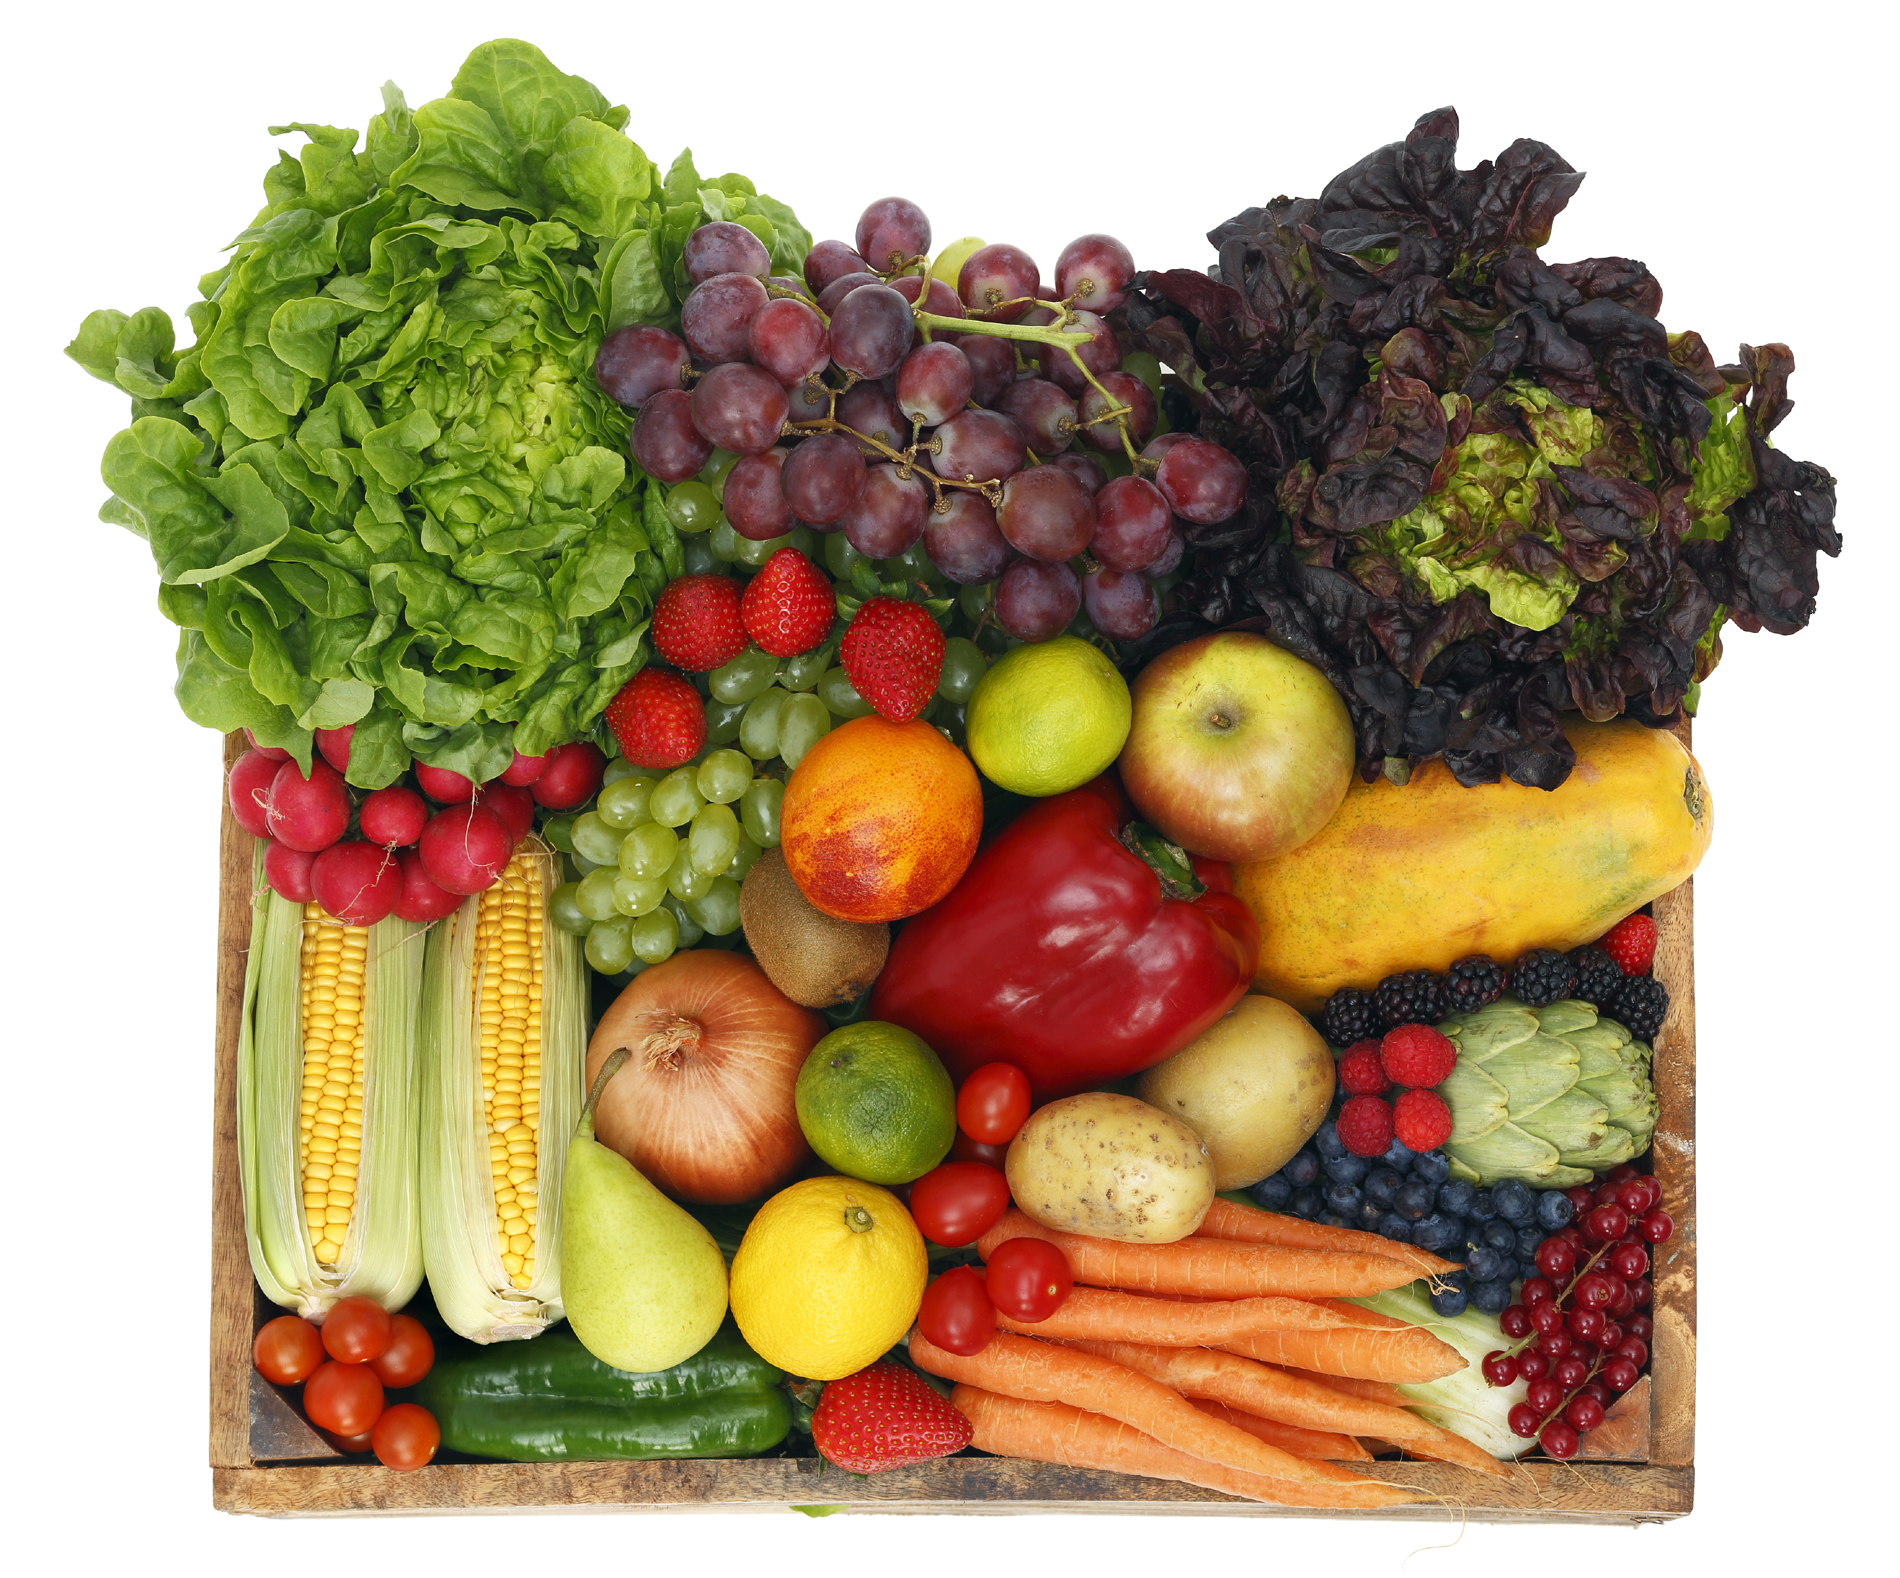 Corn onion and grape fruits and vegetables such as 52455